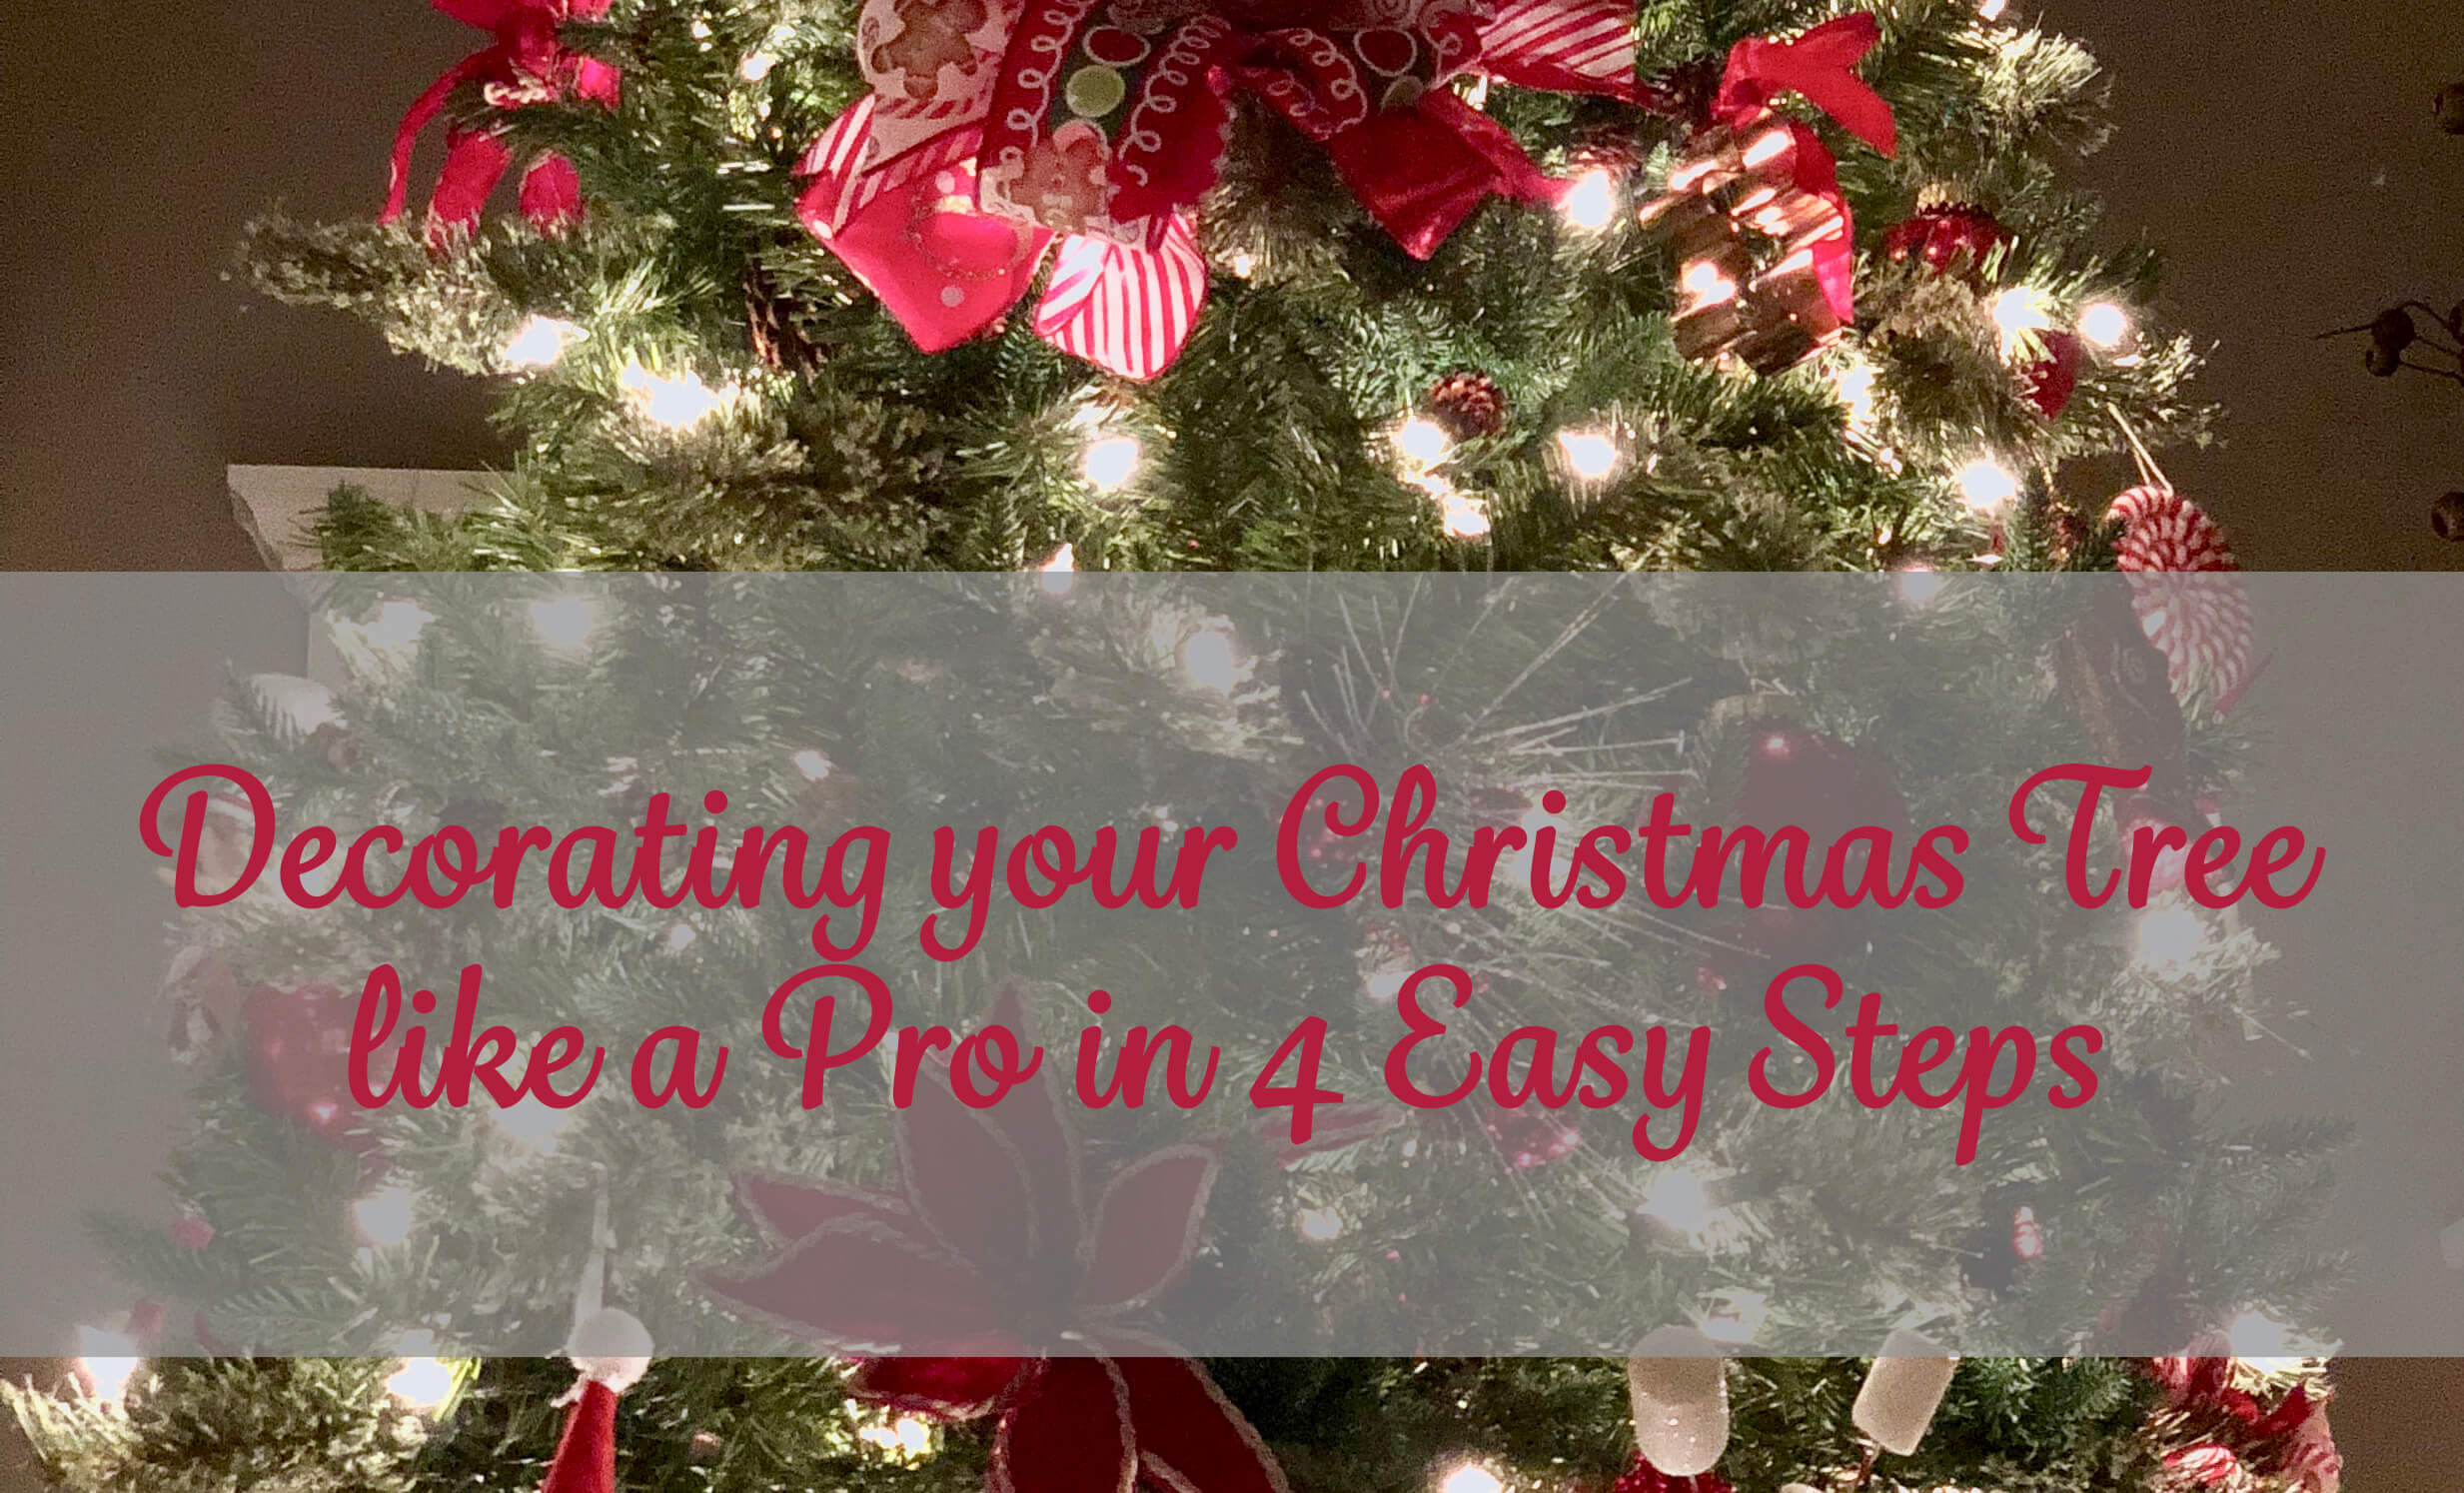 december 13 2017 by z25marketing no comments yet christmas tree christmas tree decorating - Steps To Decorating A Christmas Tree